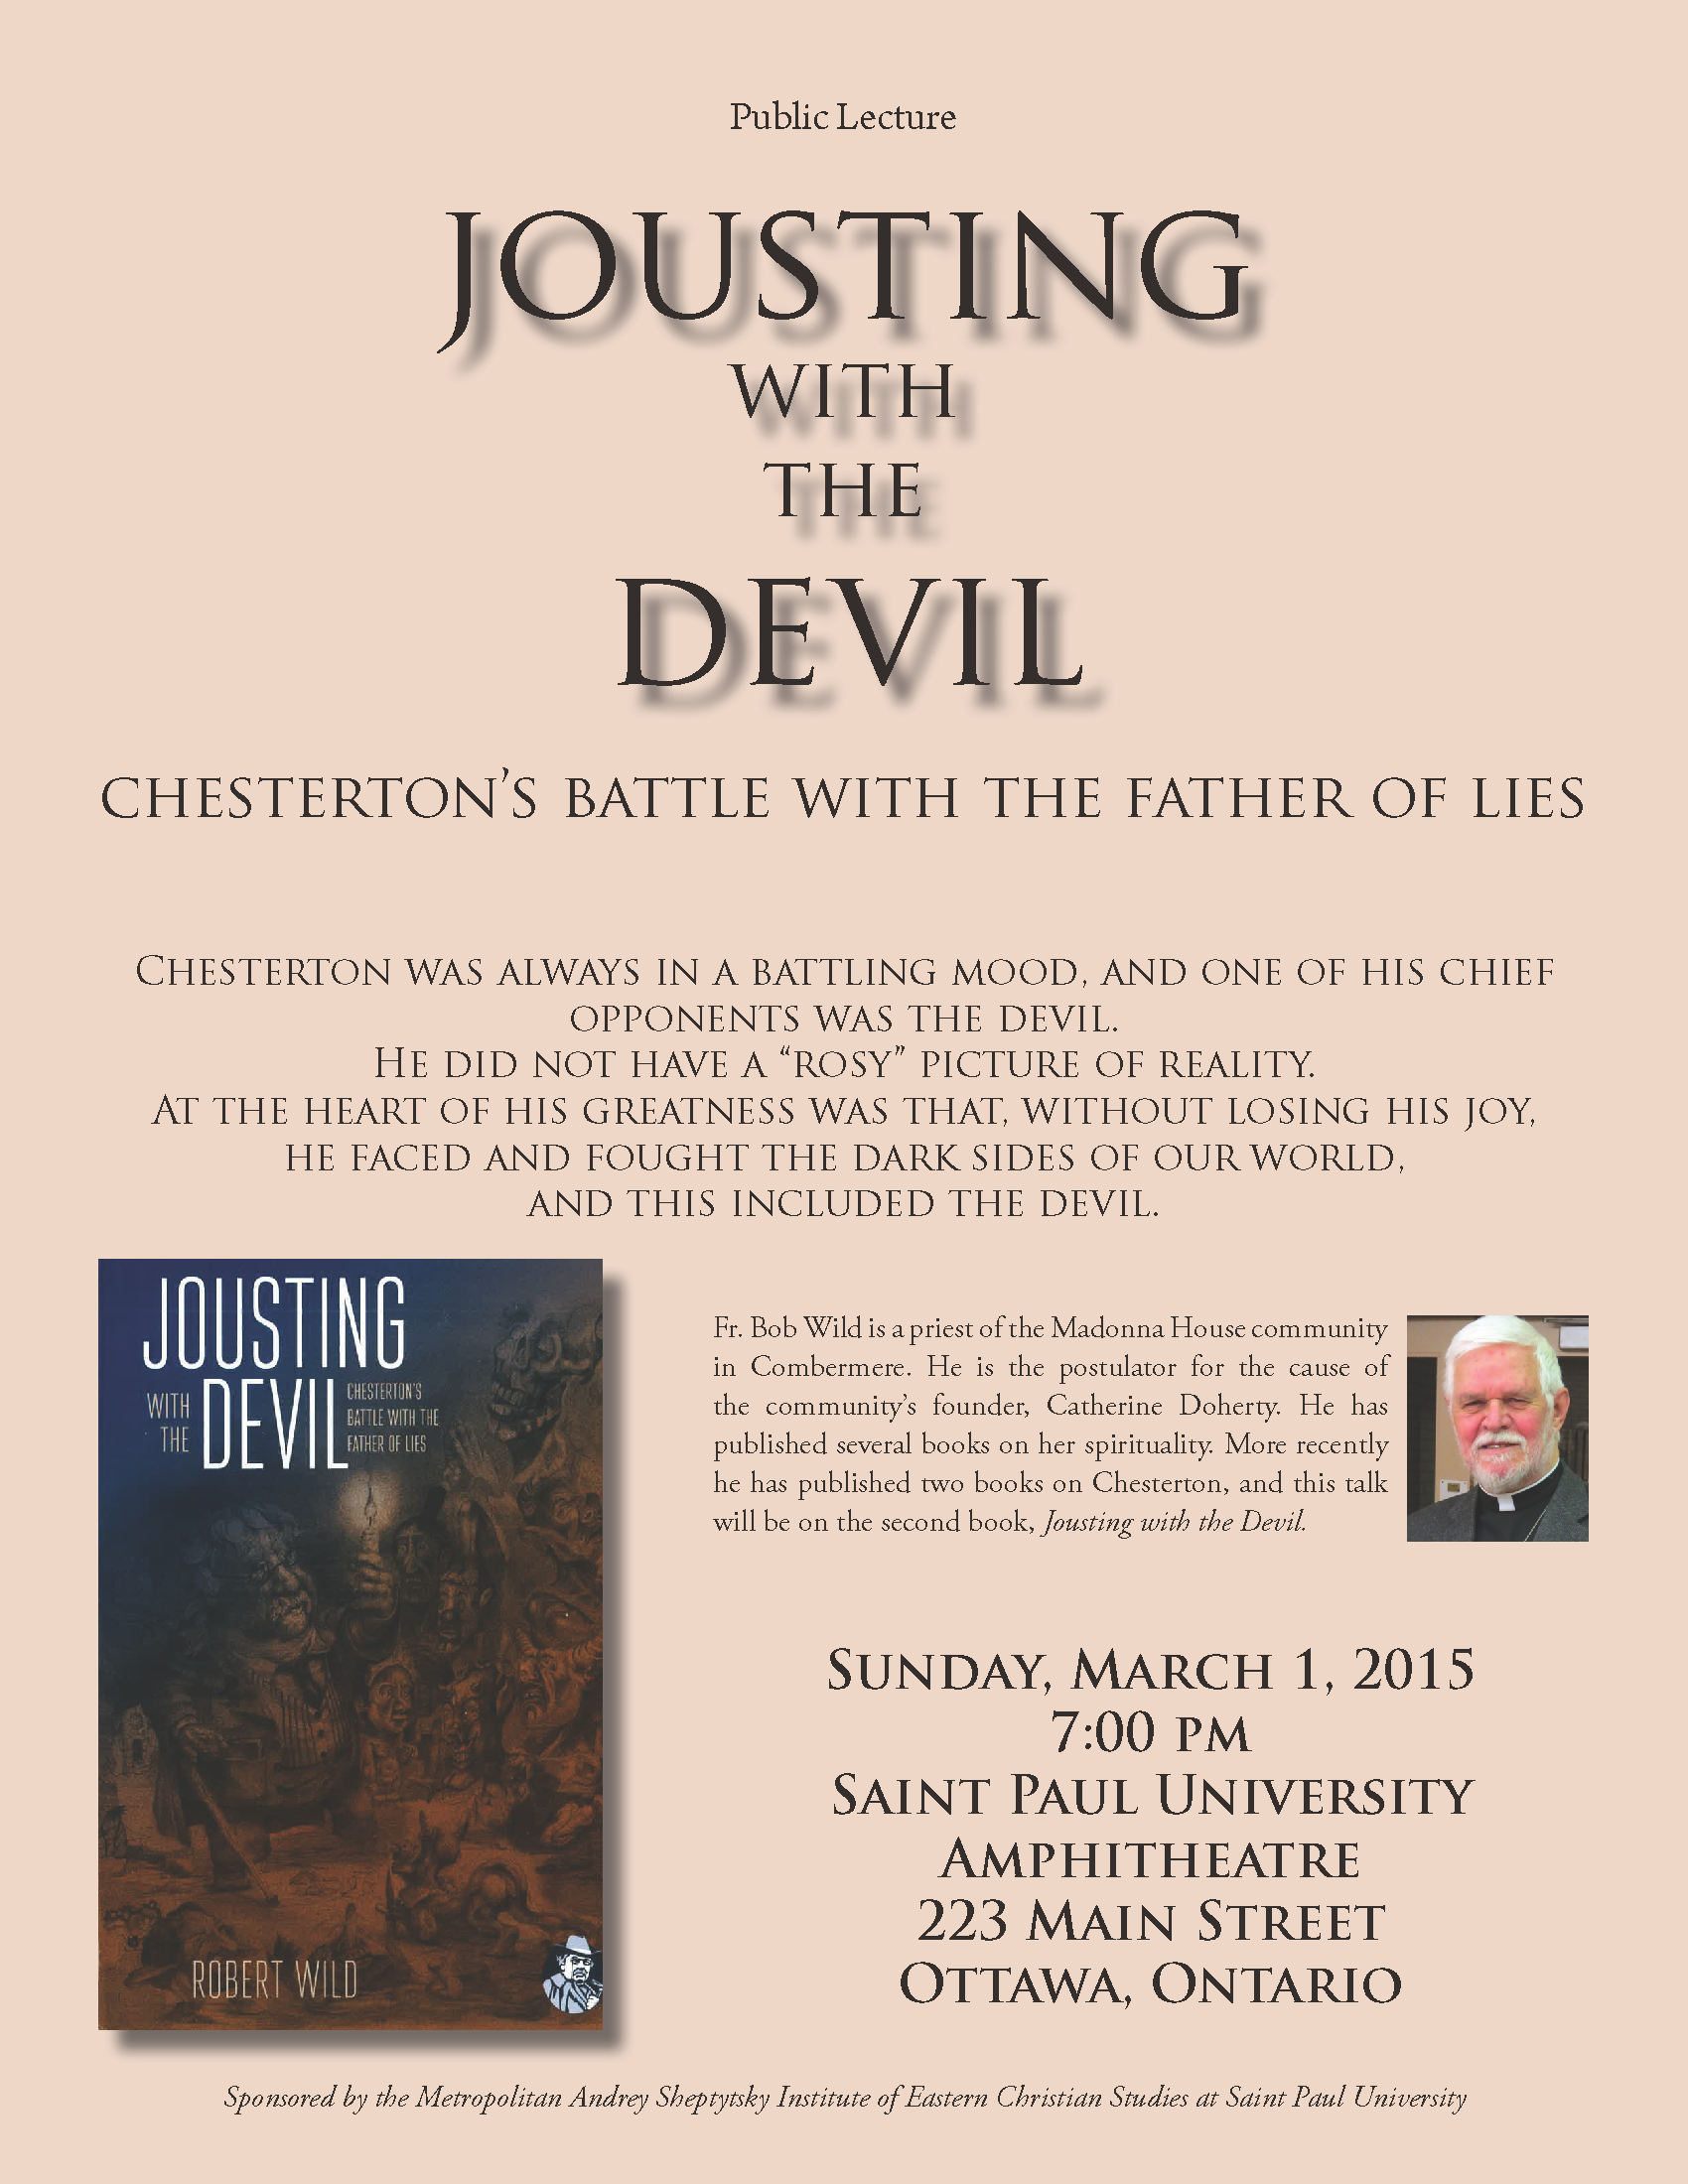 joustin-with-devil-lecture-2015p